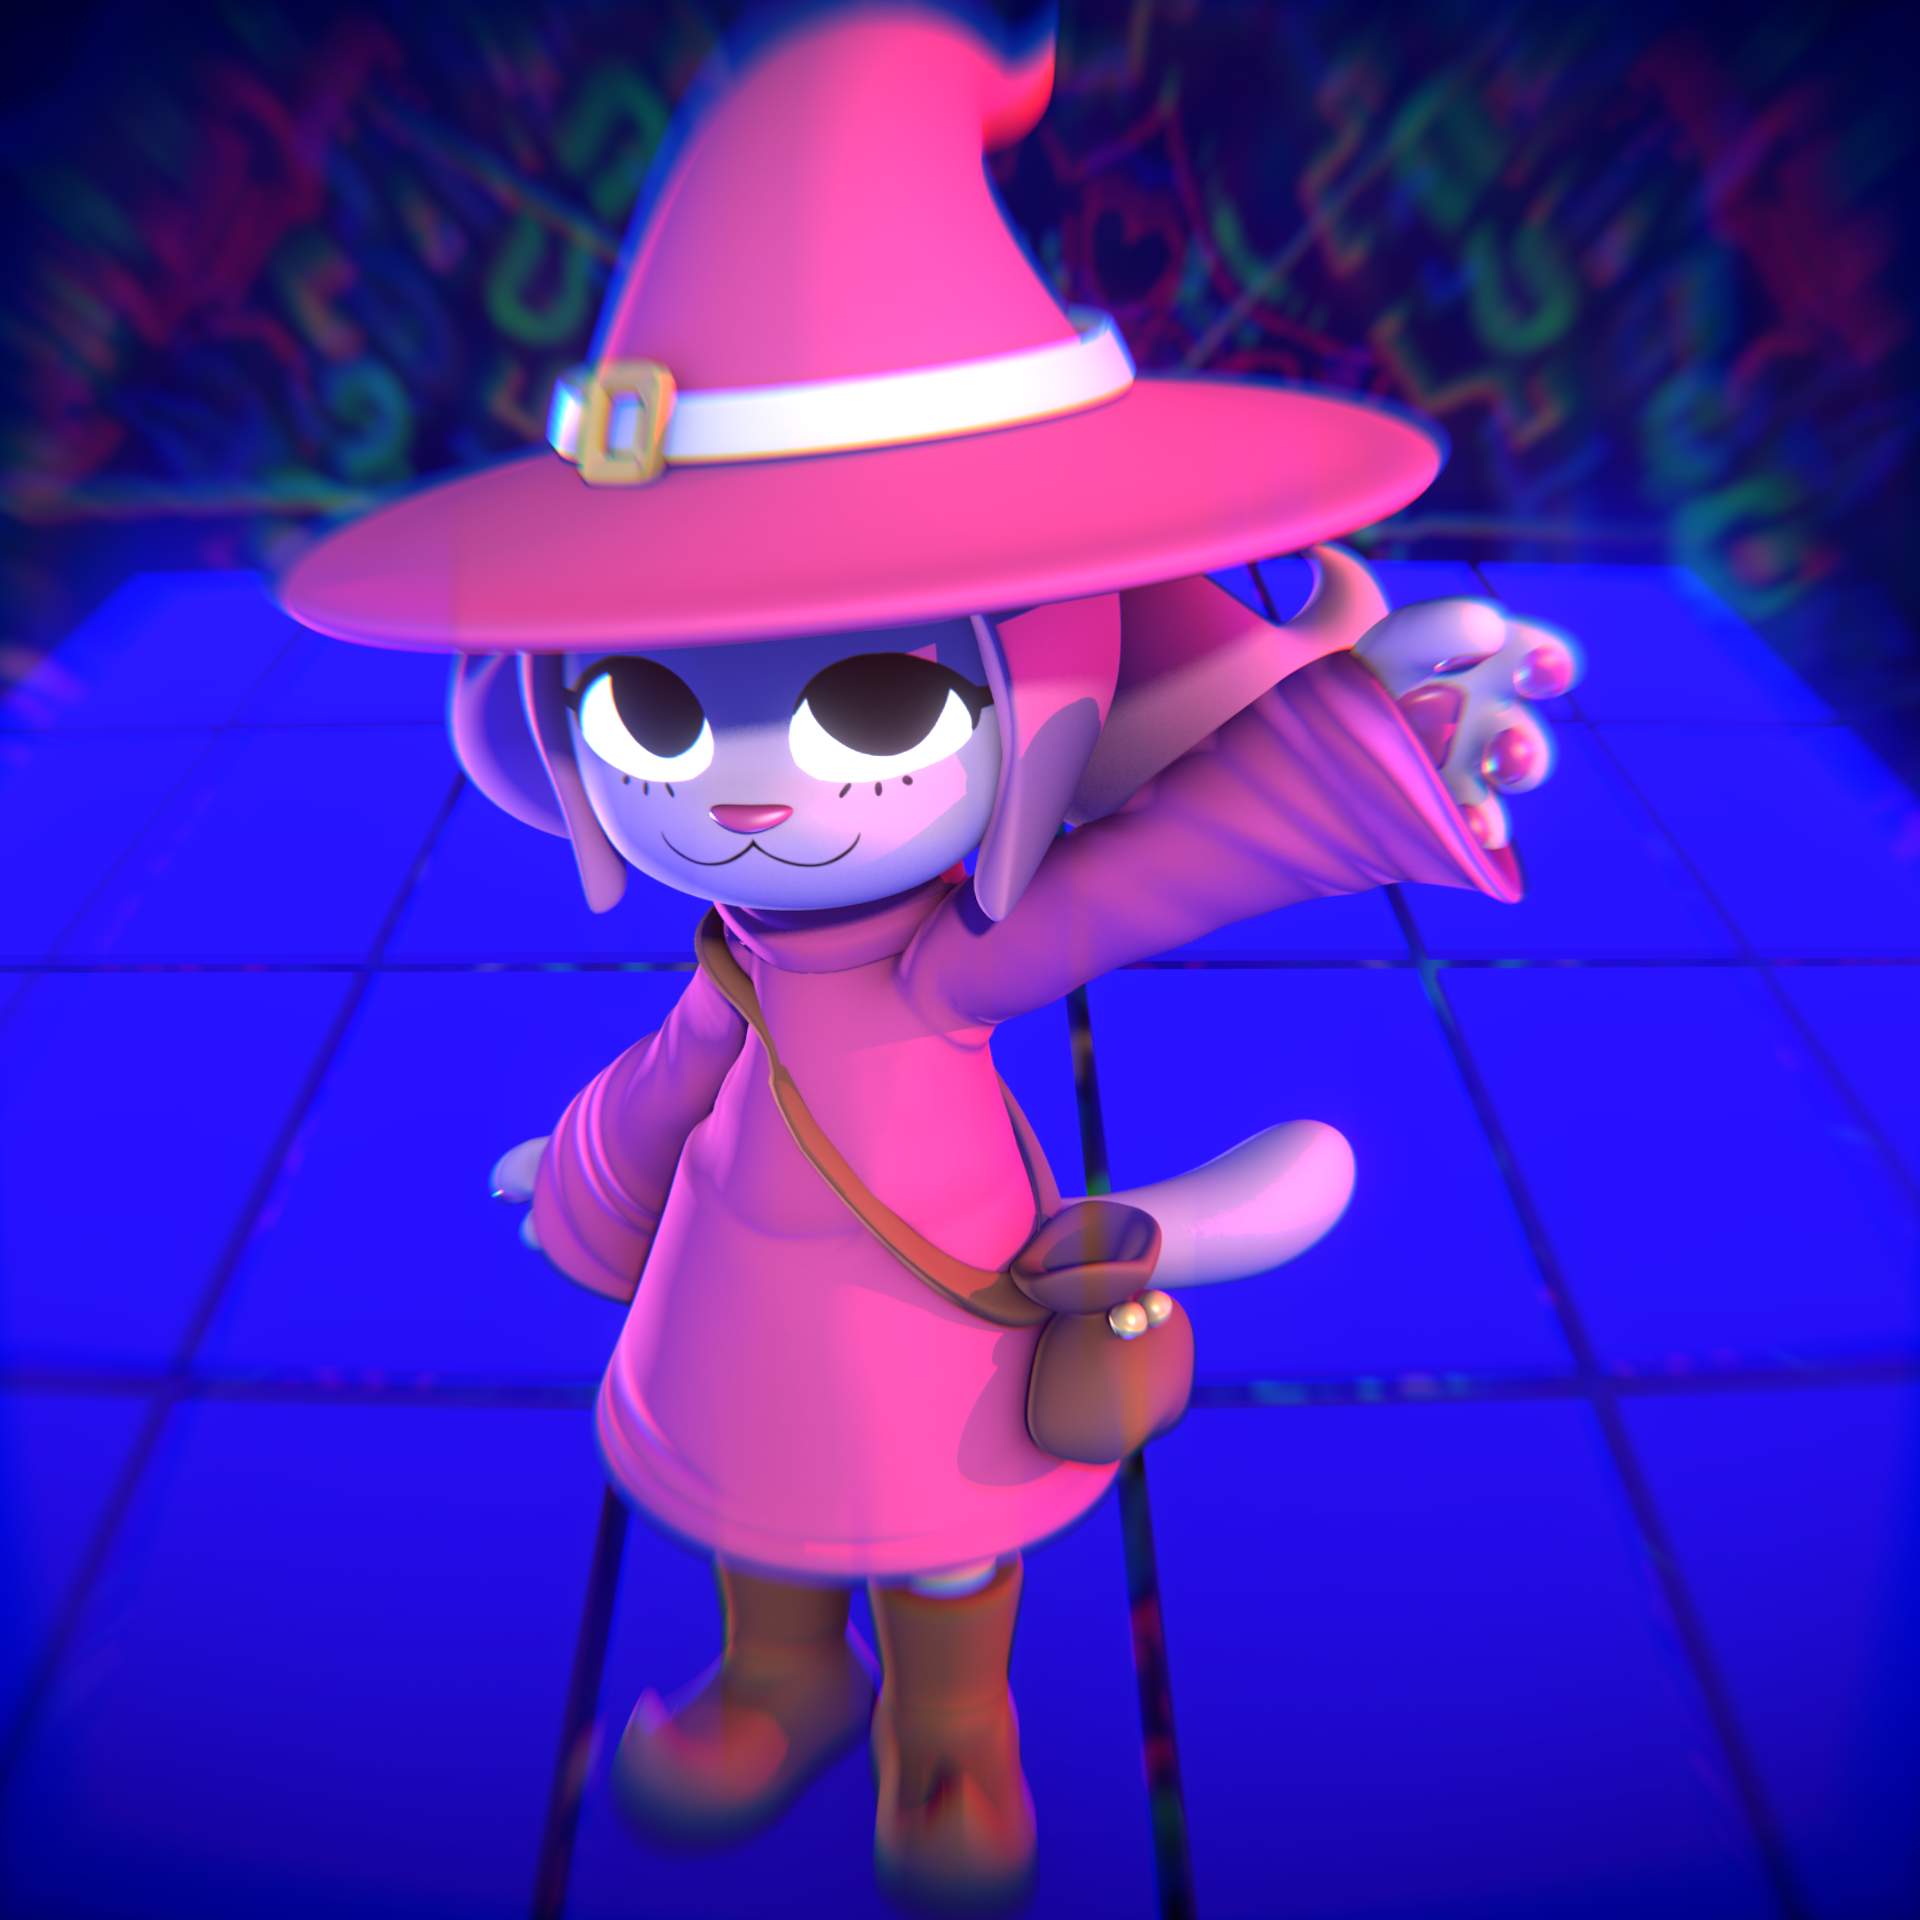 COMMISSION - Kitty Mage